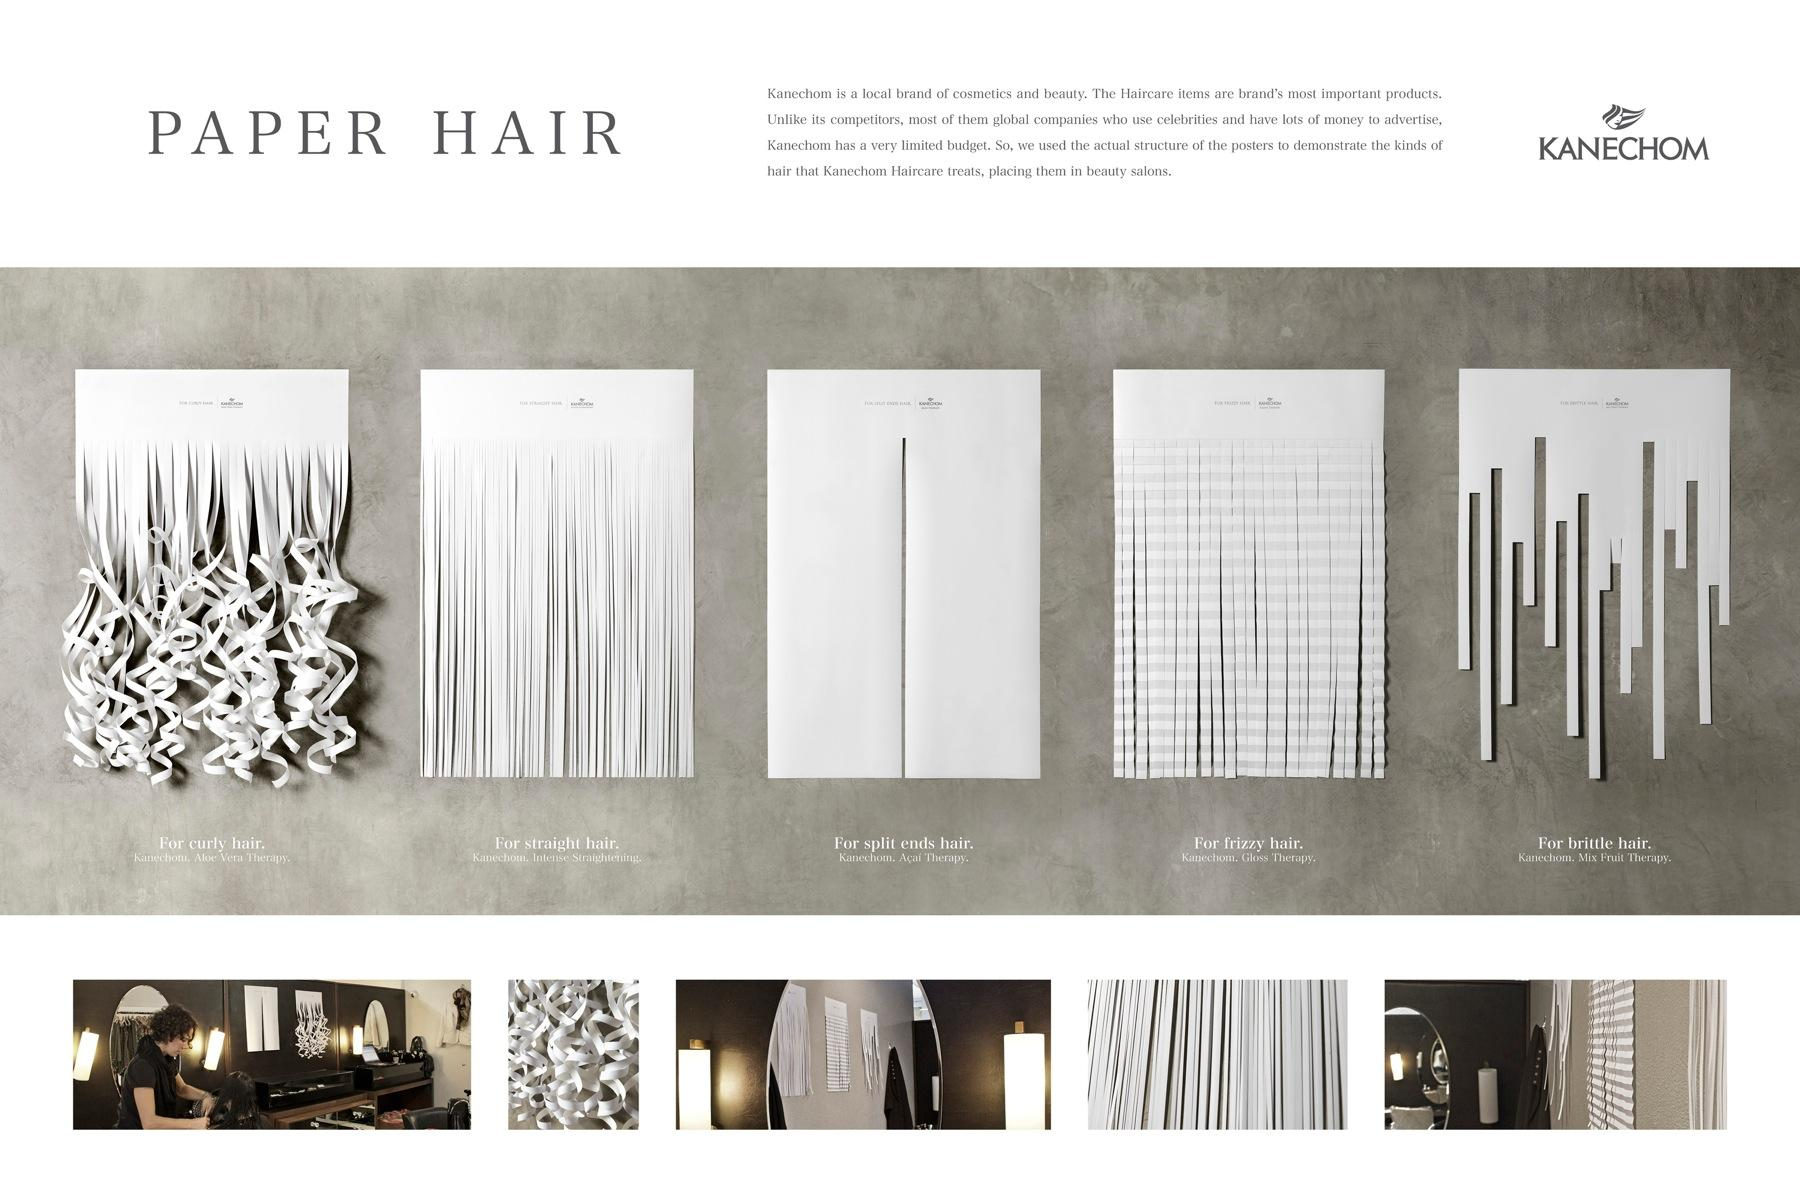 Kanechom Outdoor Ad -  Paper hair